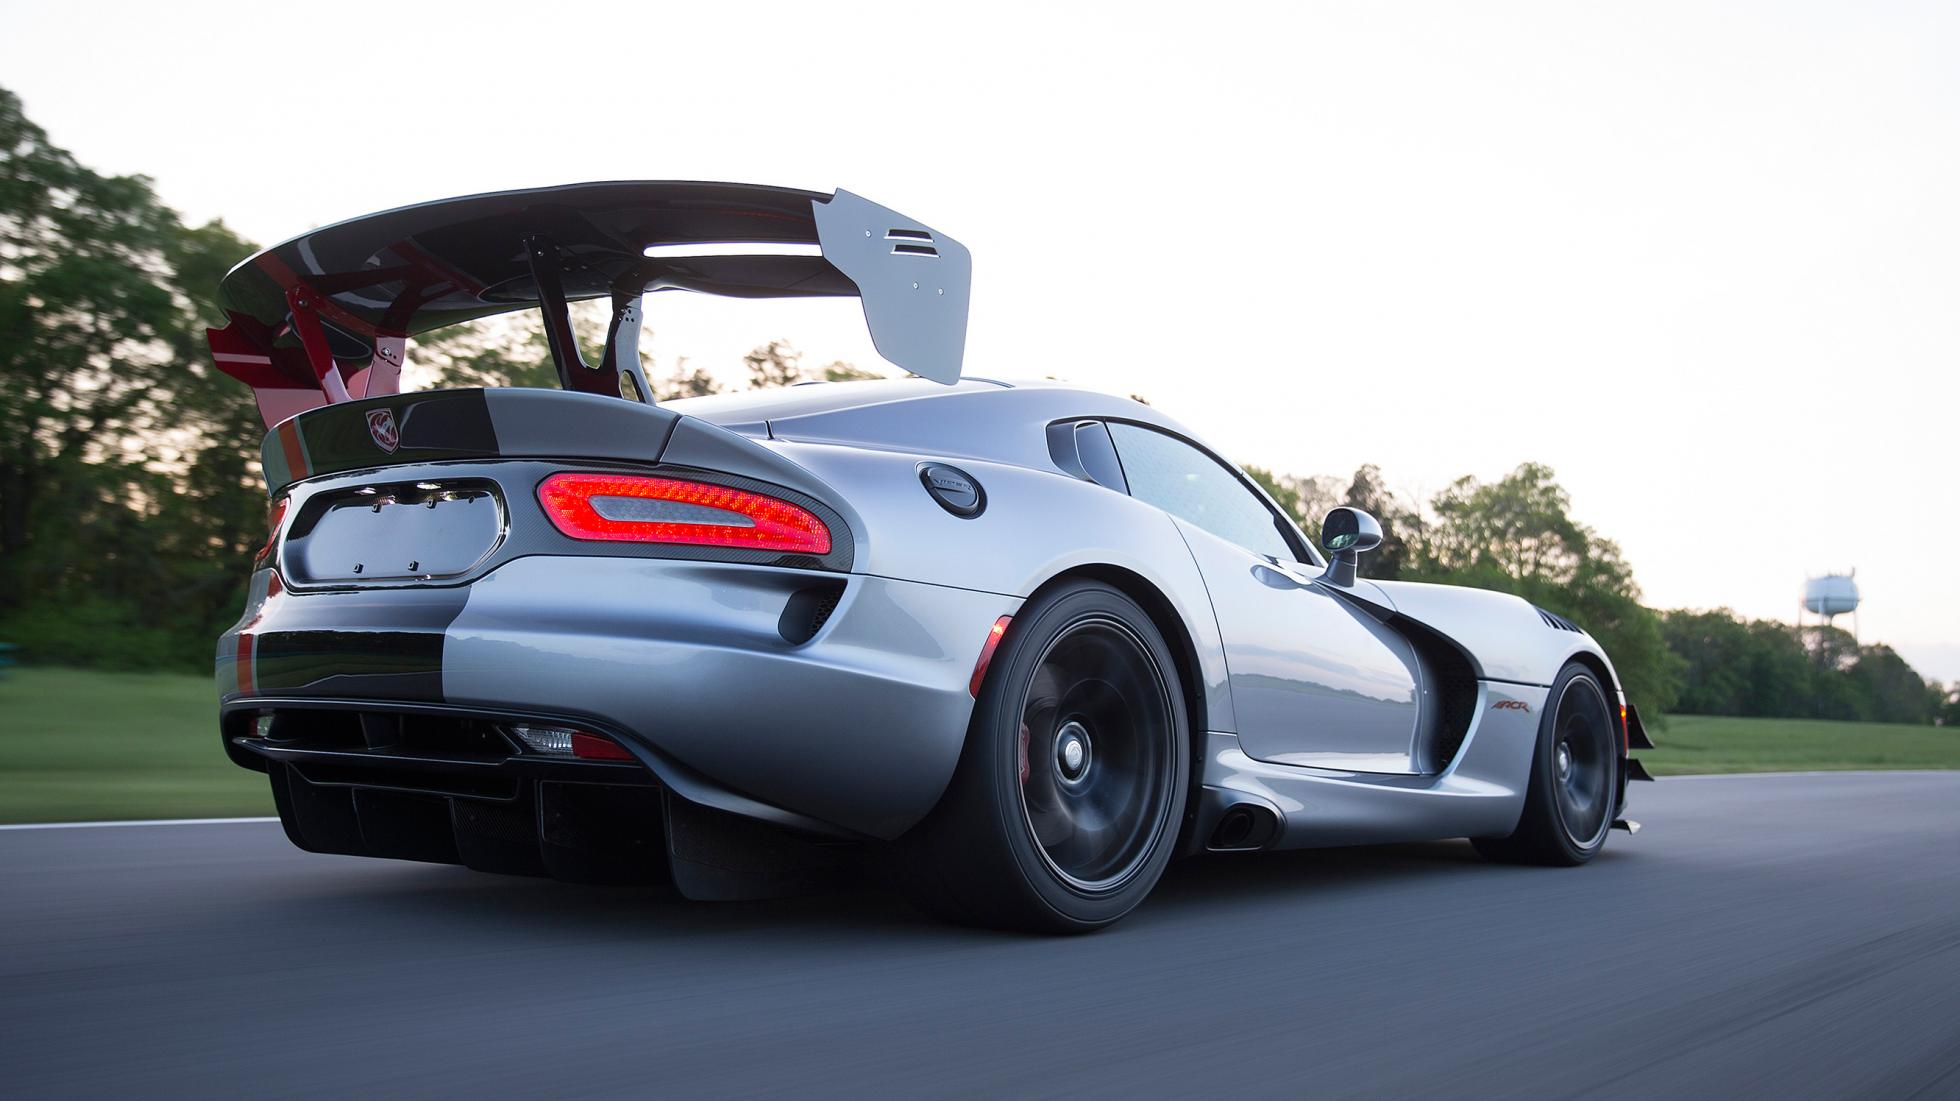 Dodge Viper ACR rear quarter